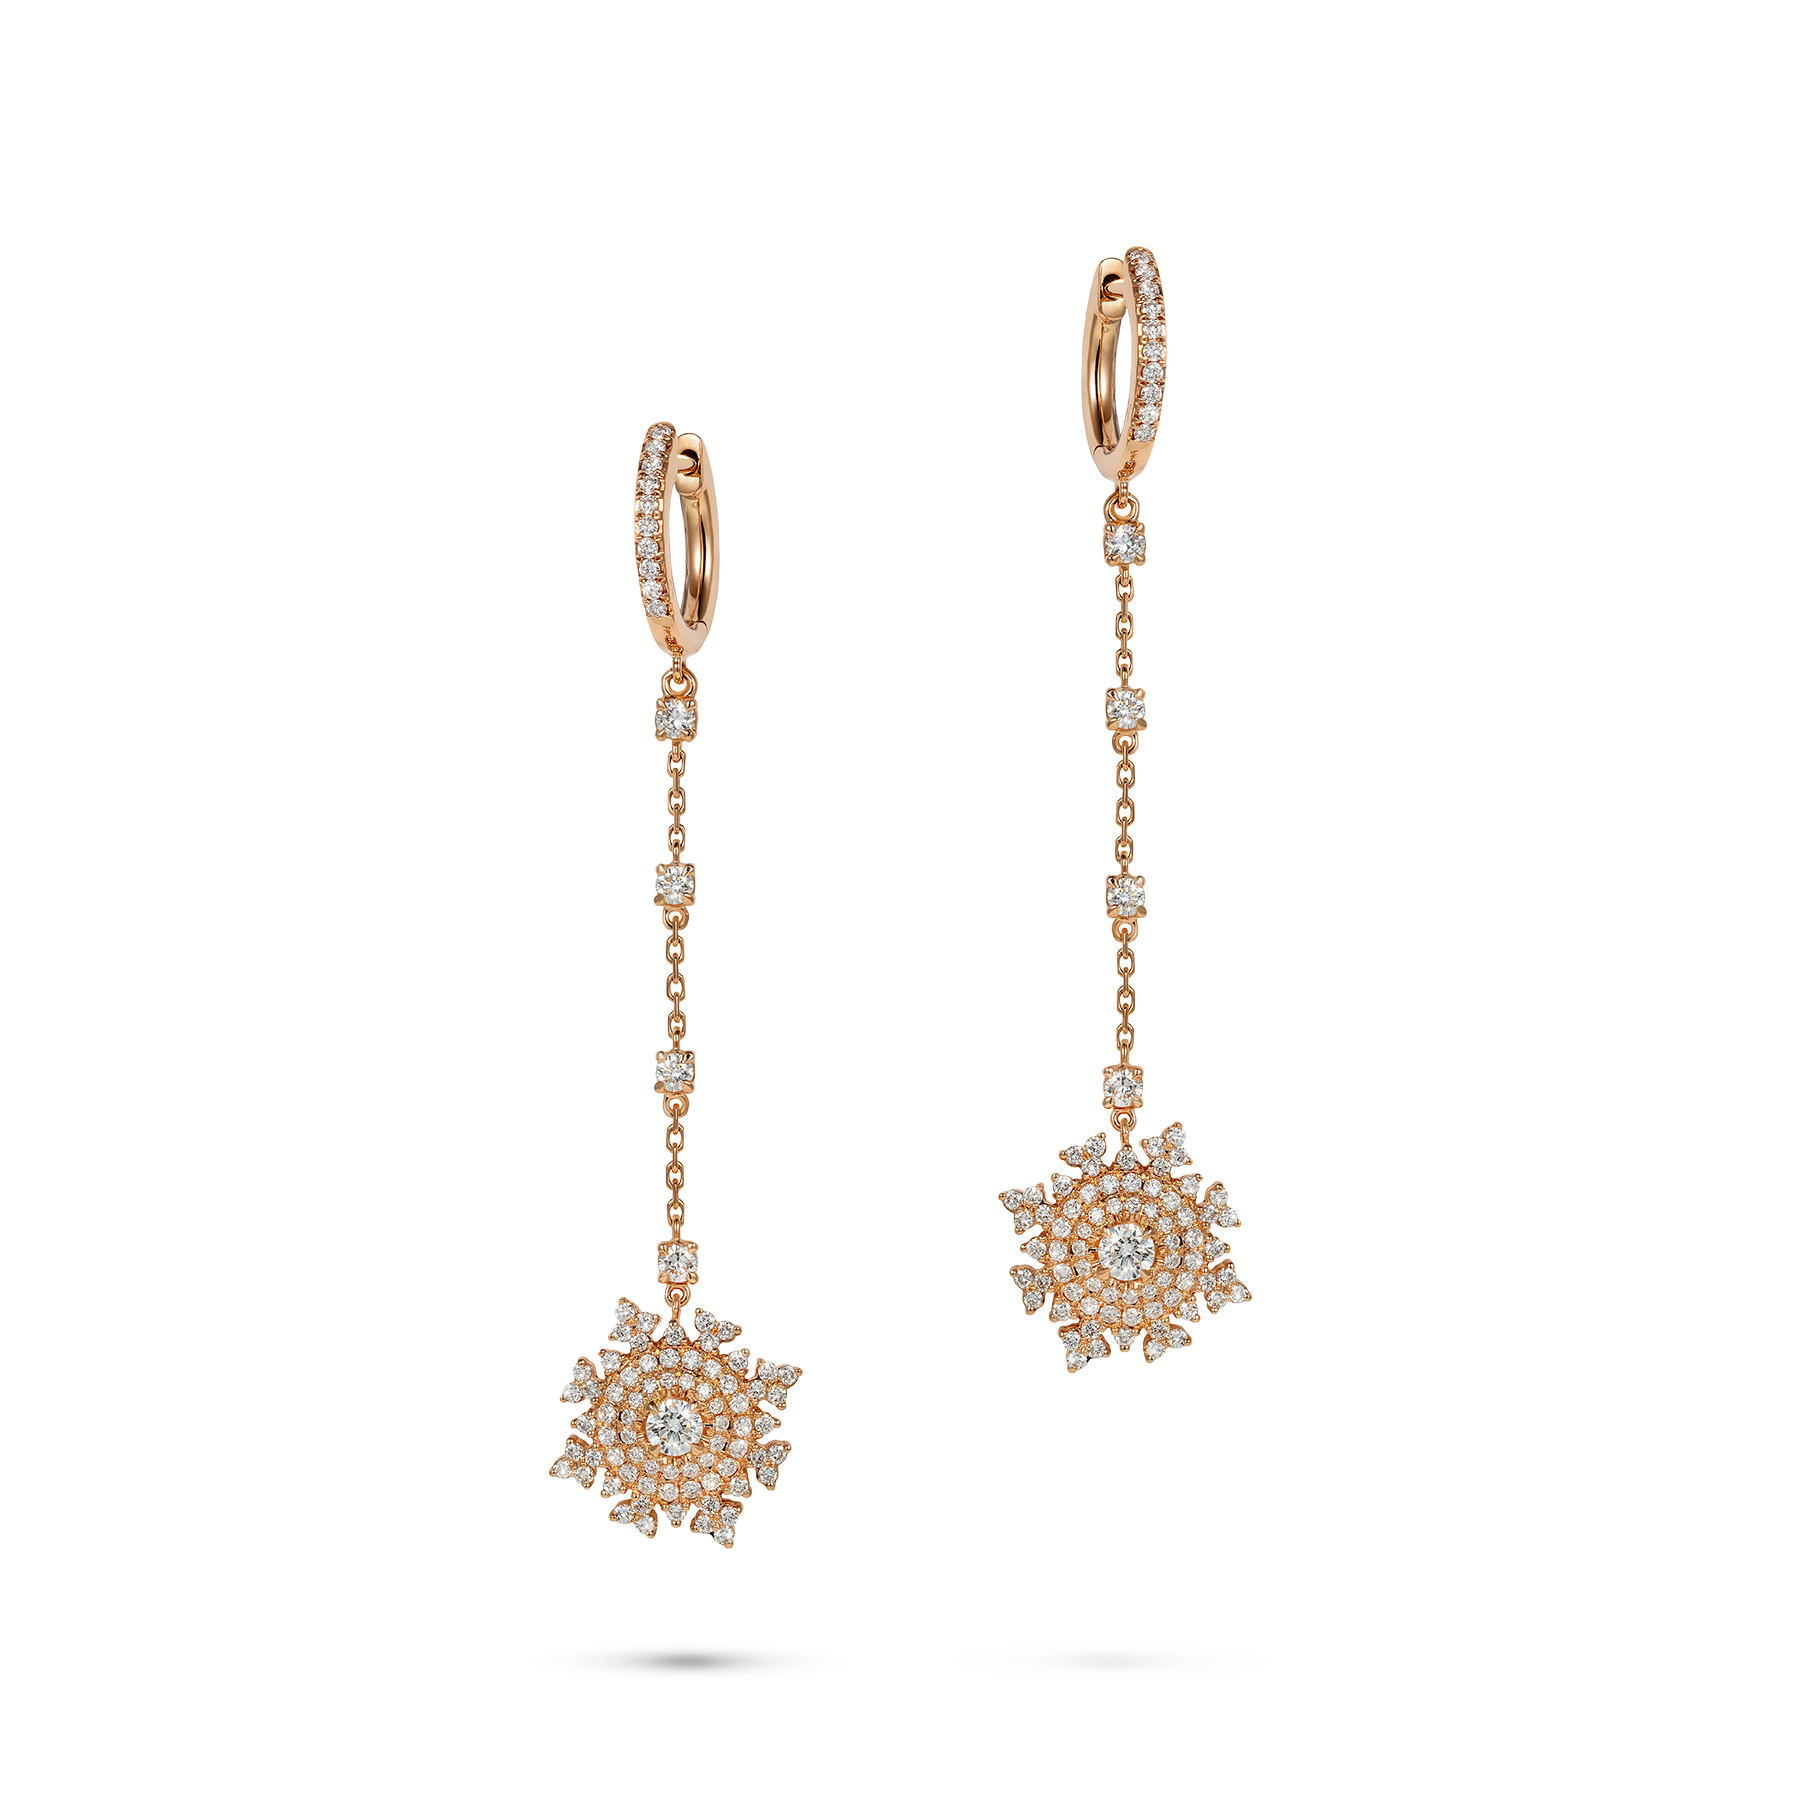 Petite Tsarina Rose Huggie Earrings by Nadine Aysoy on curated-crowd.com